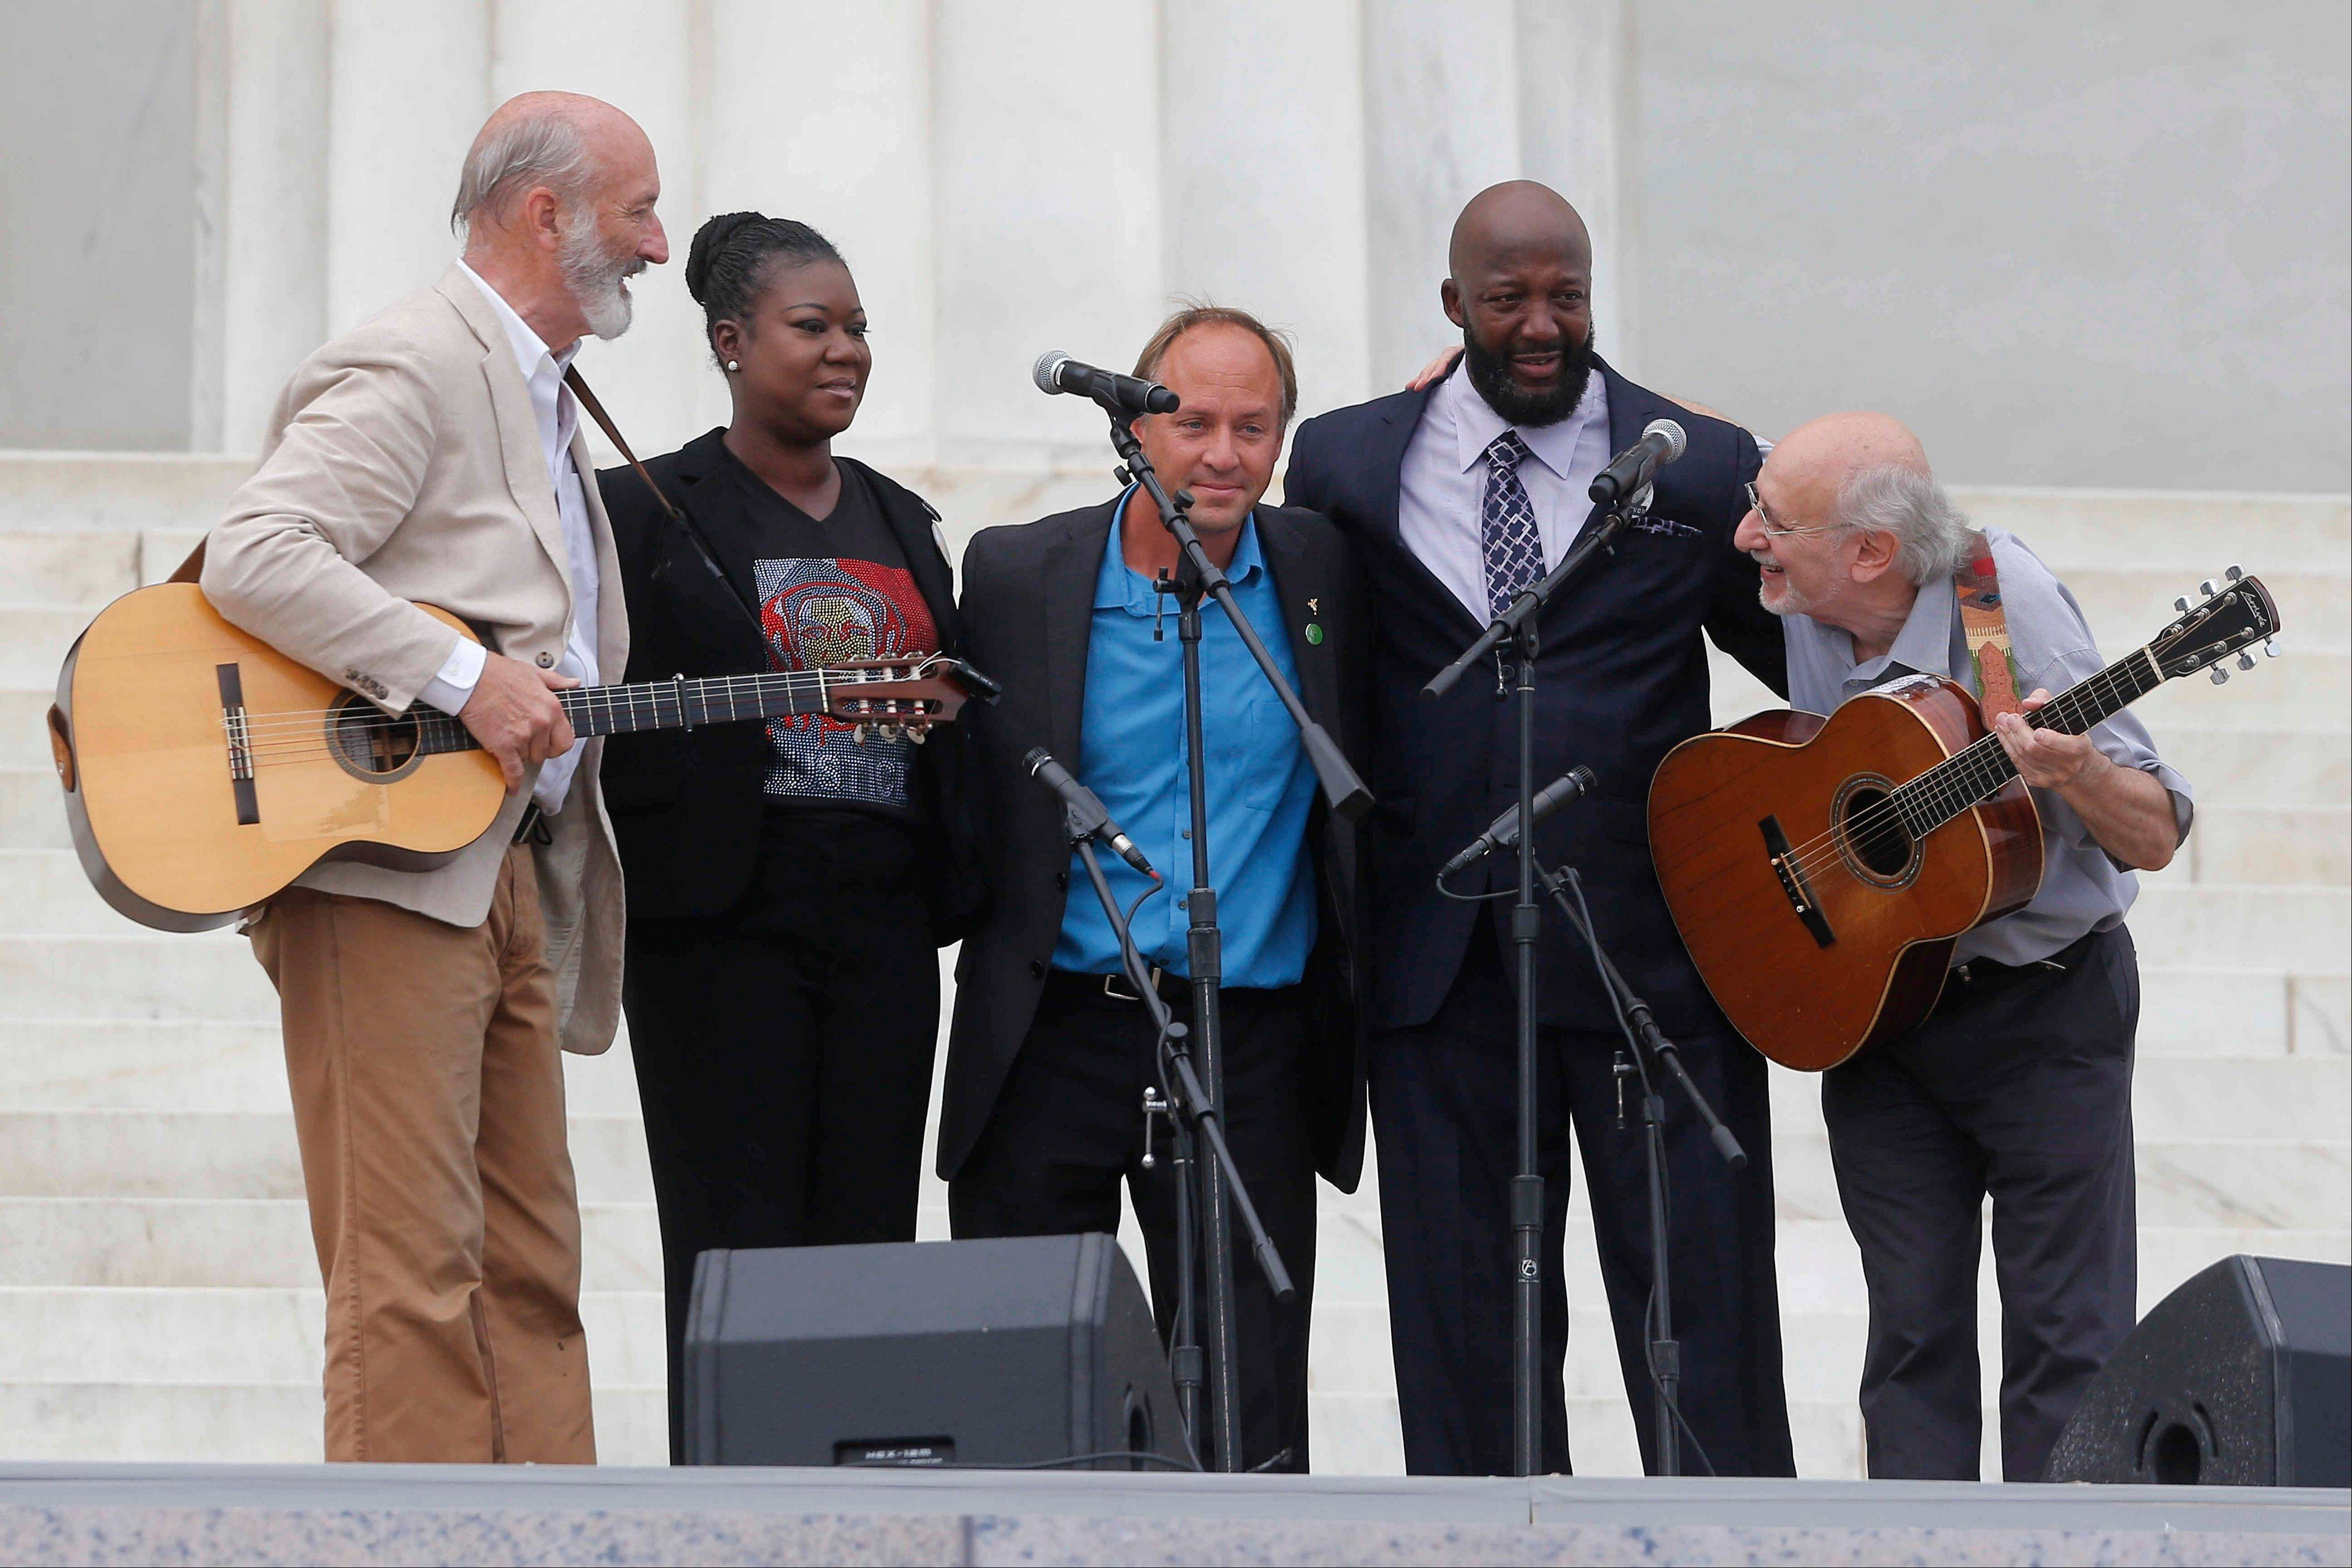 With Trayvon Martin's parents, Sybrina Fulton, and Tracy Martin, and Mark Barden, father of Sandy Hook Elementary School shooting victim Daniel Barden, Peter Yarrow, left, and Paul Stookey, right, of the folk trio Peter, Paul and Mary, perform at the 50th Anniversary of the March on Washington .